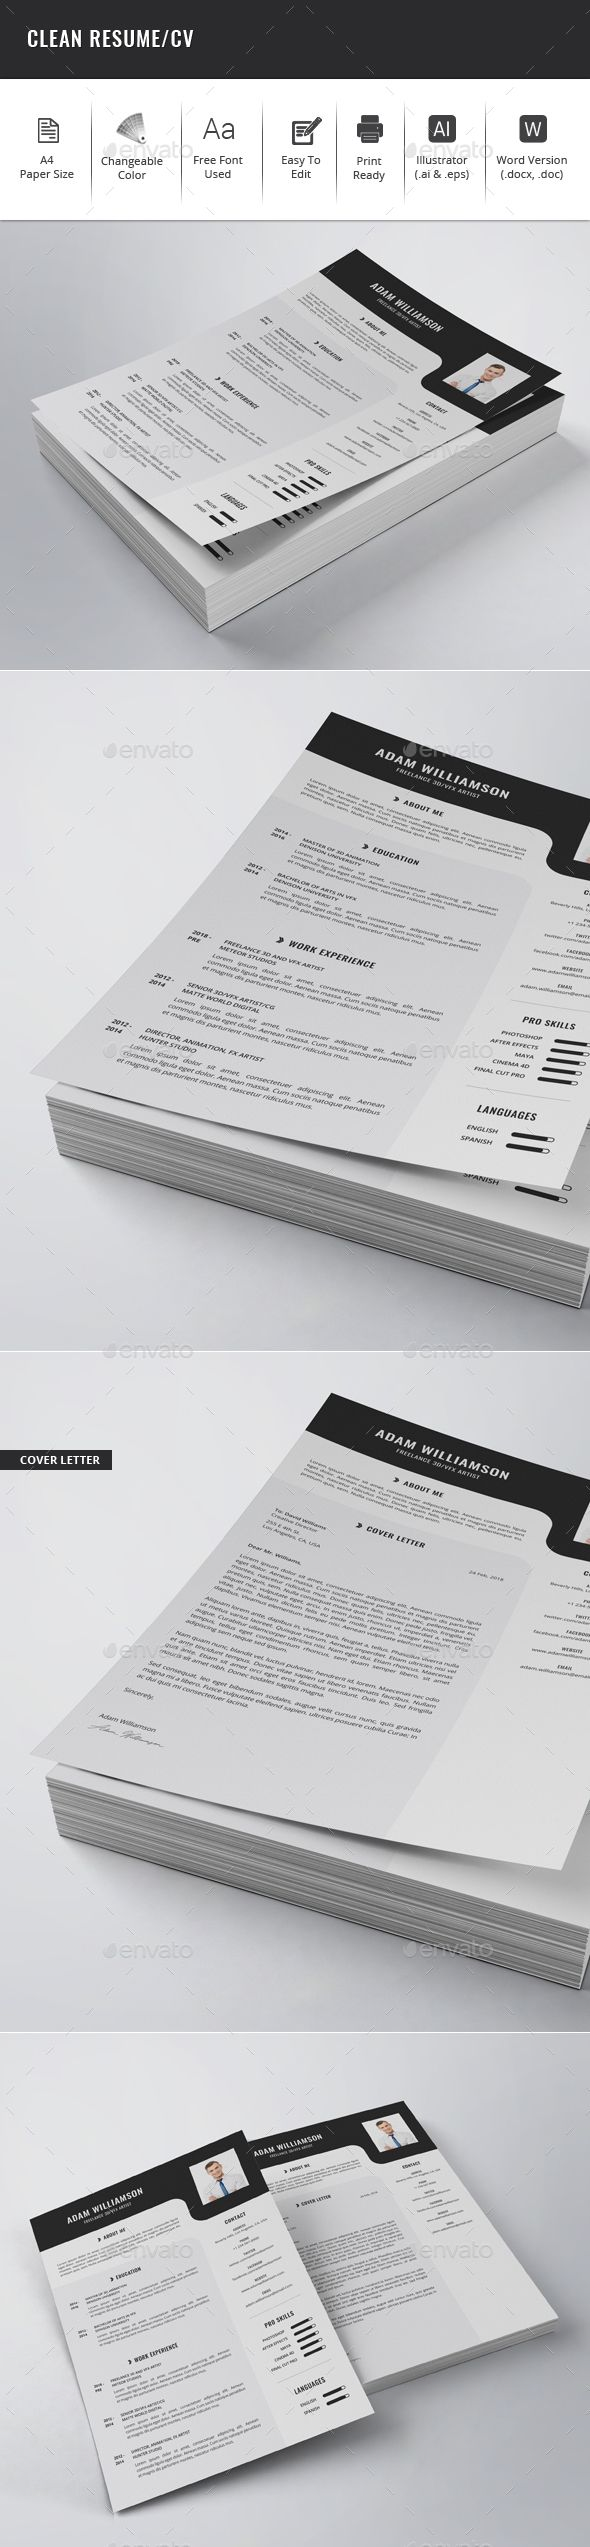 The 25+ best Resume fonts ideas on Pinterest | Resume ideas ...